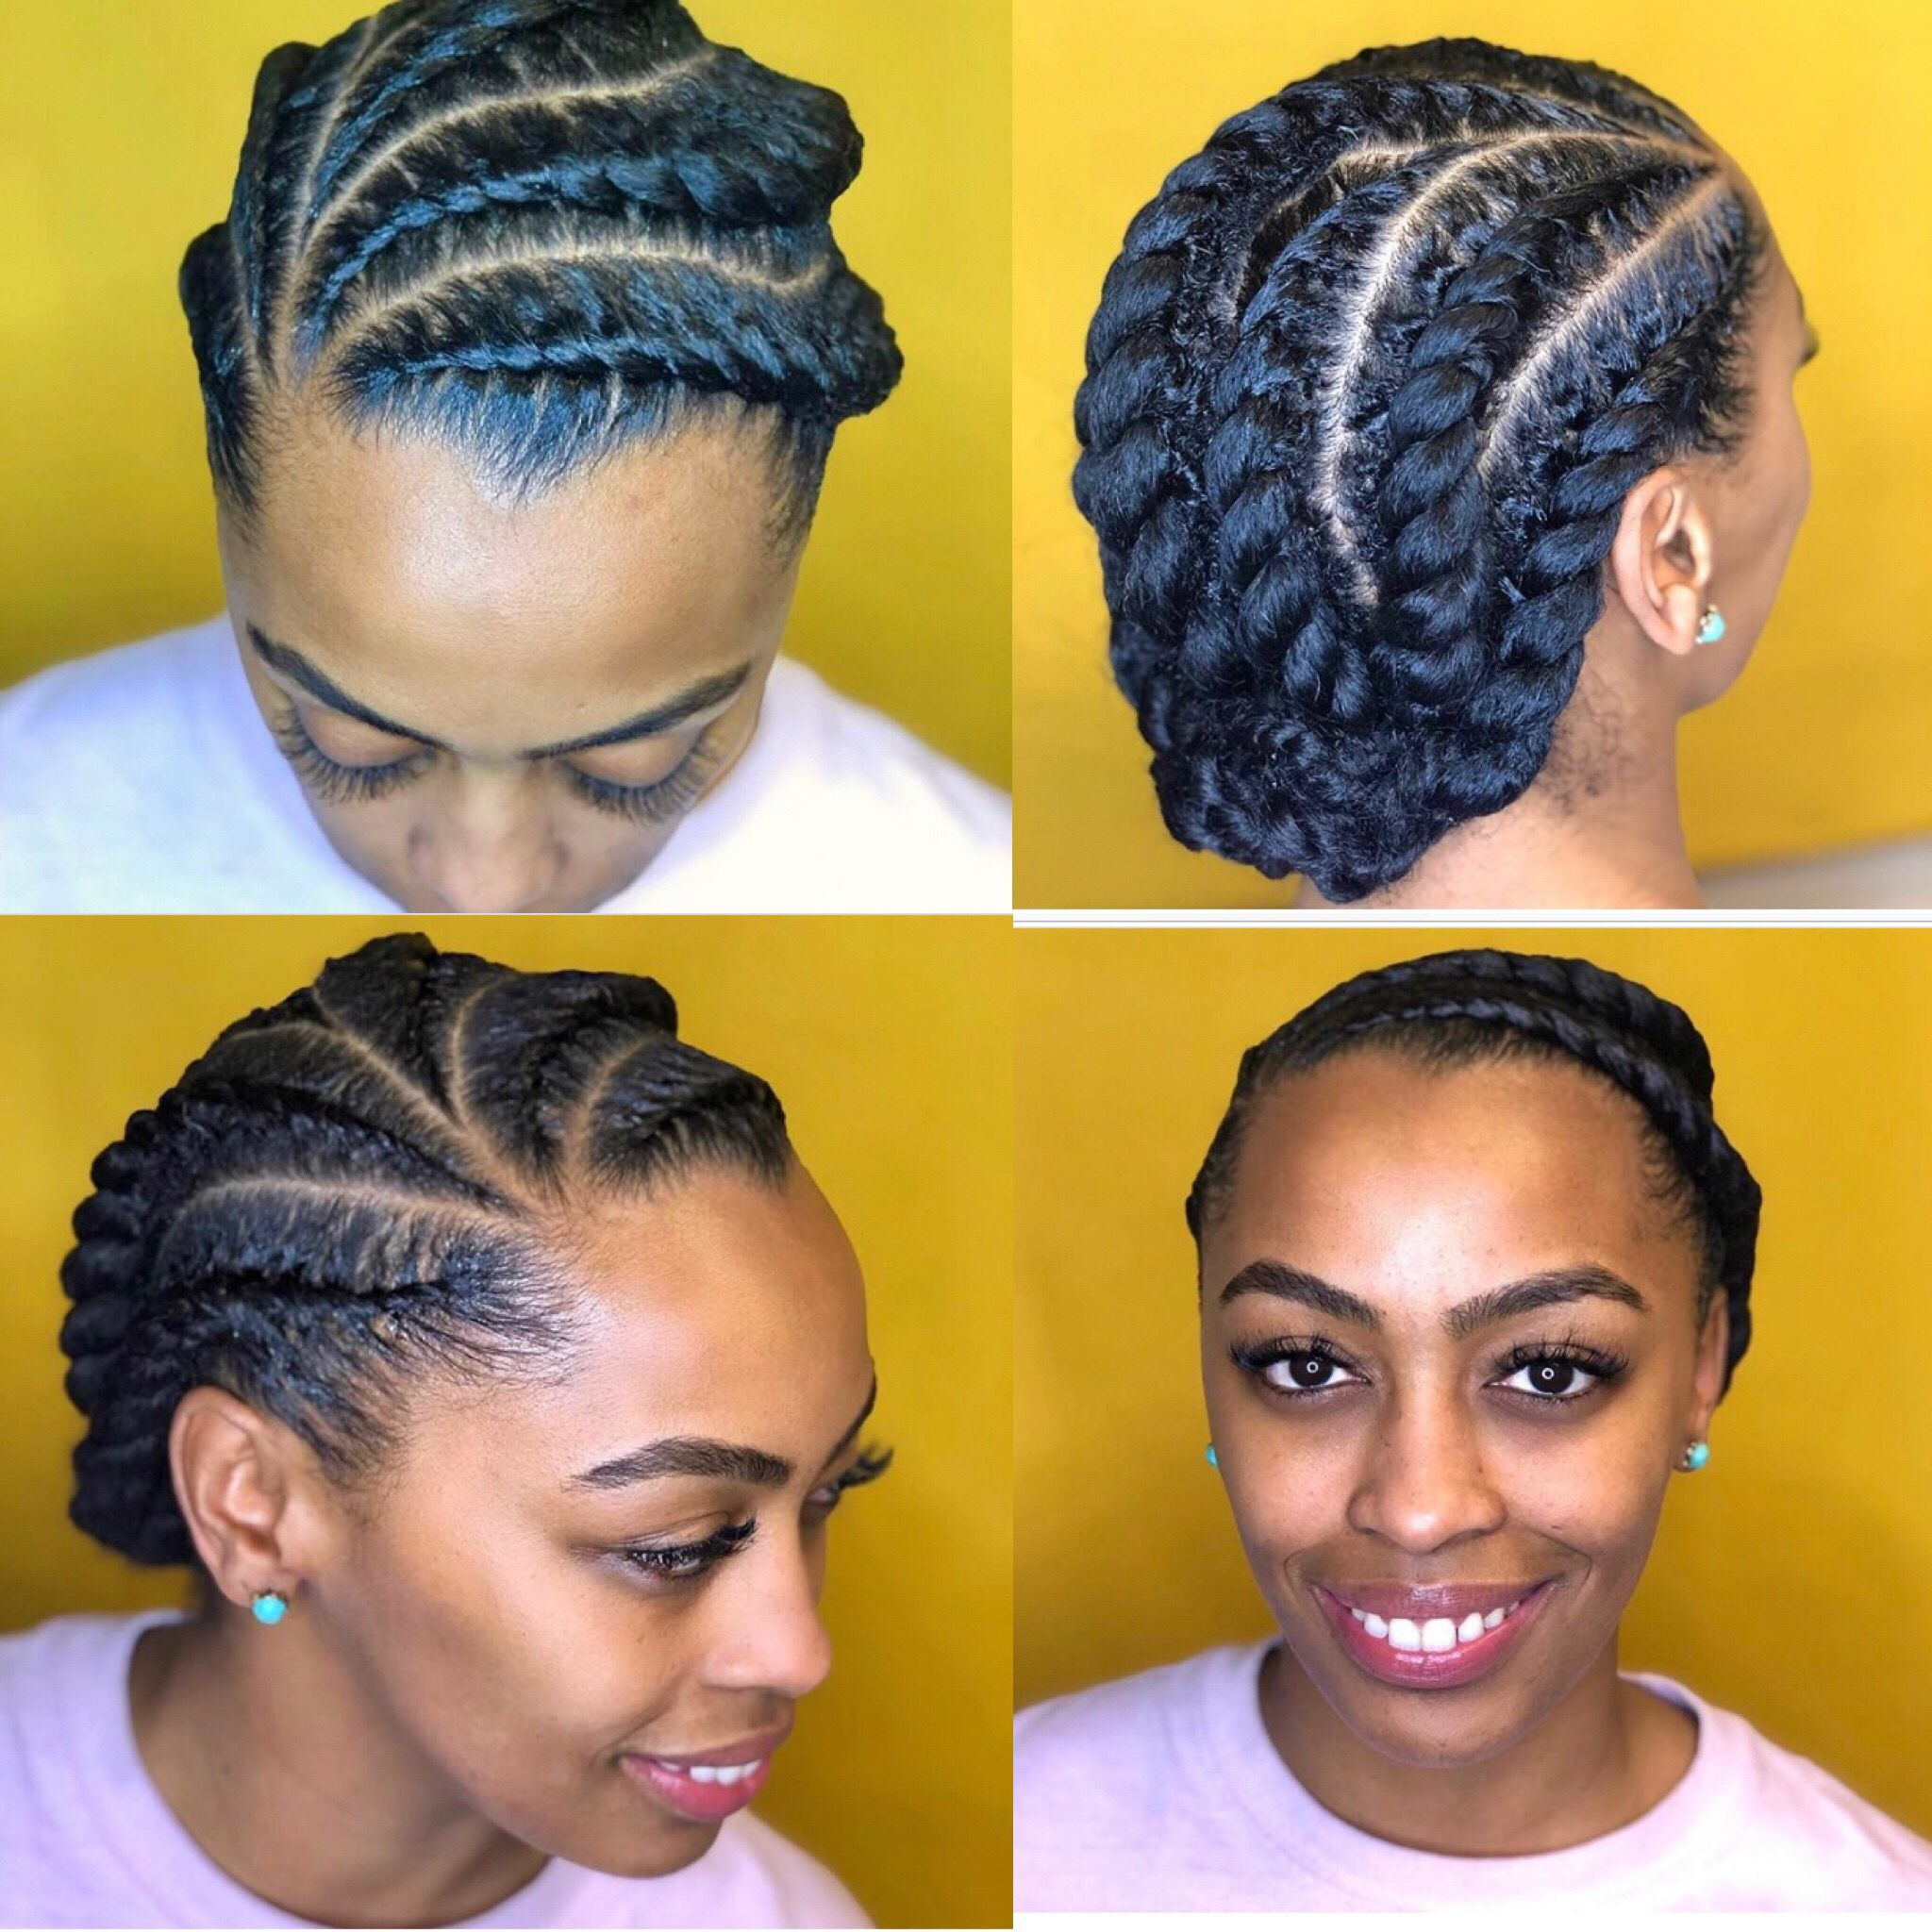 8 Super Cute Protective Styles For Winter - Kinky Hair Rocks